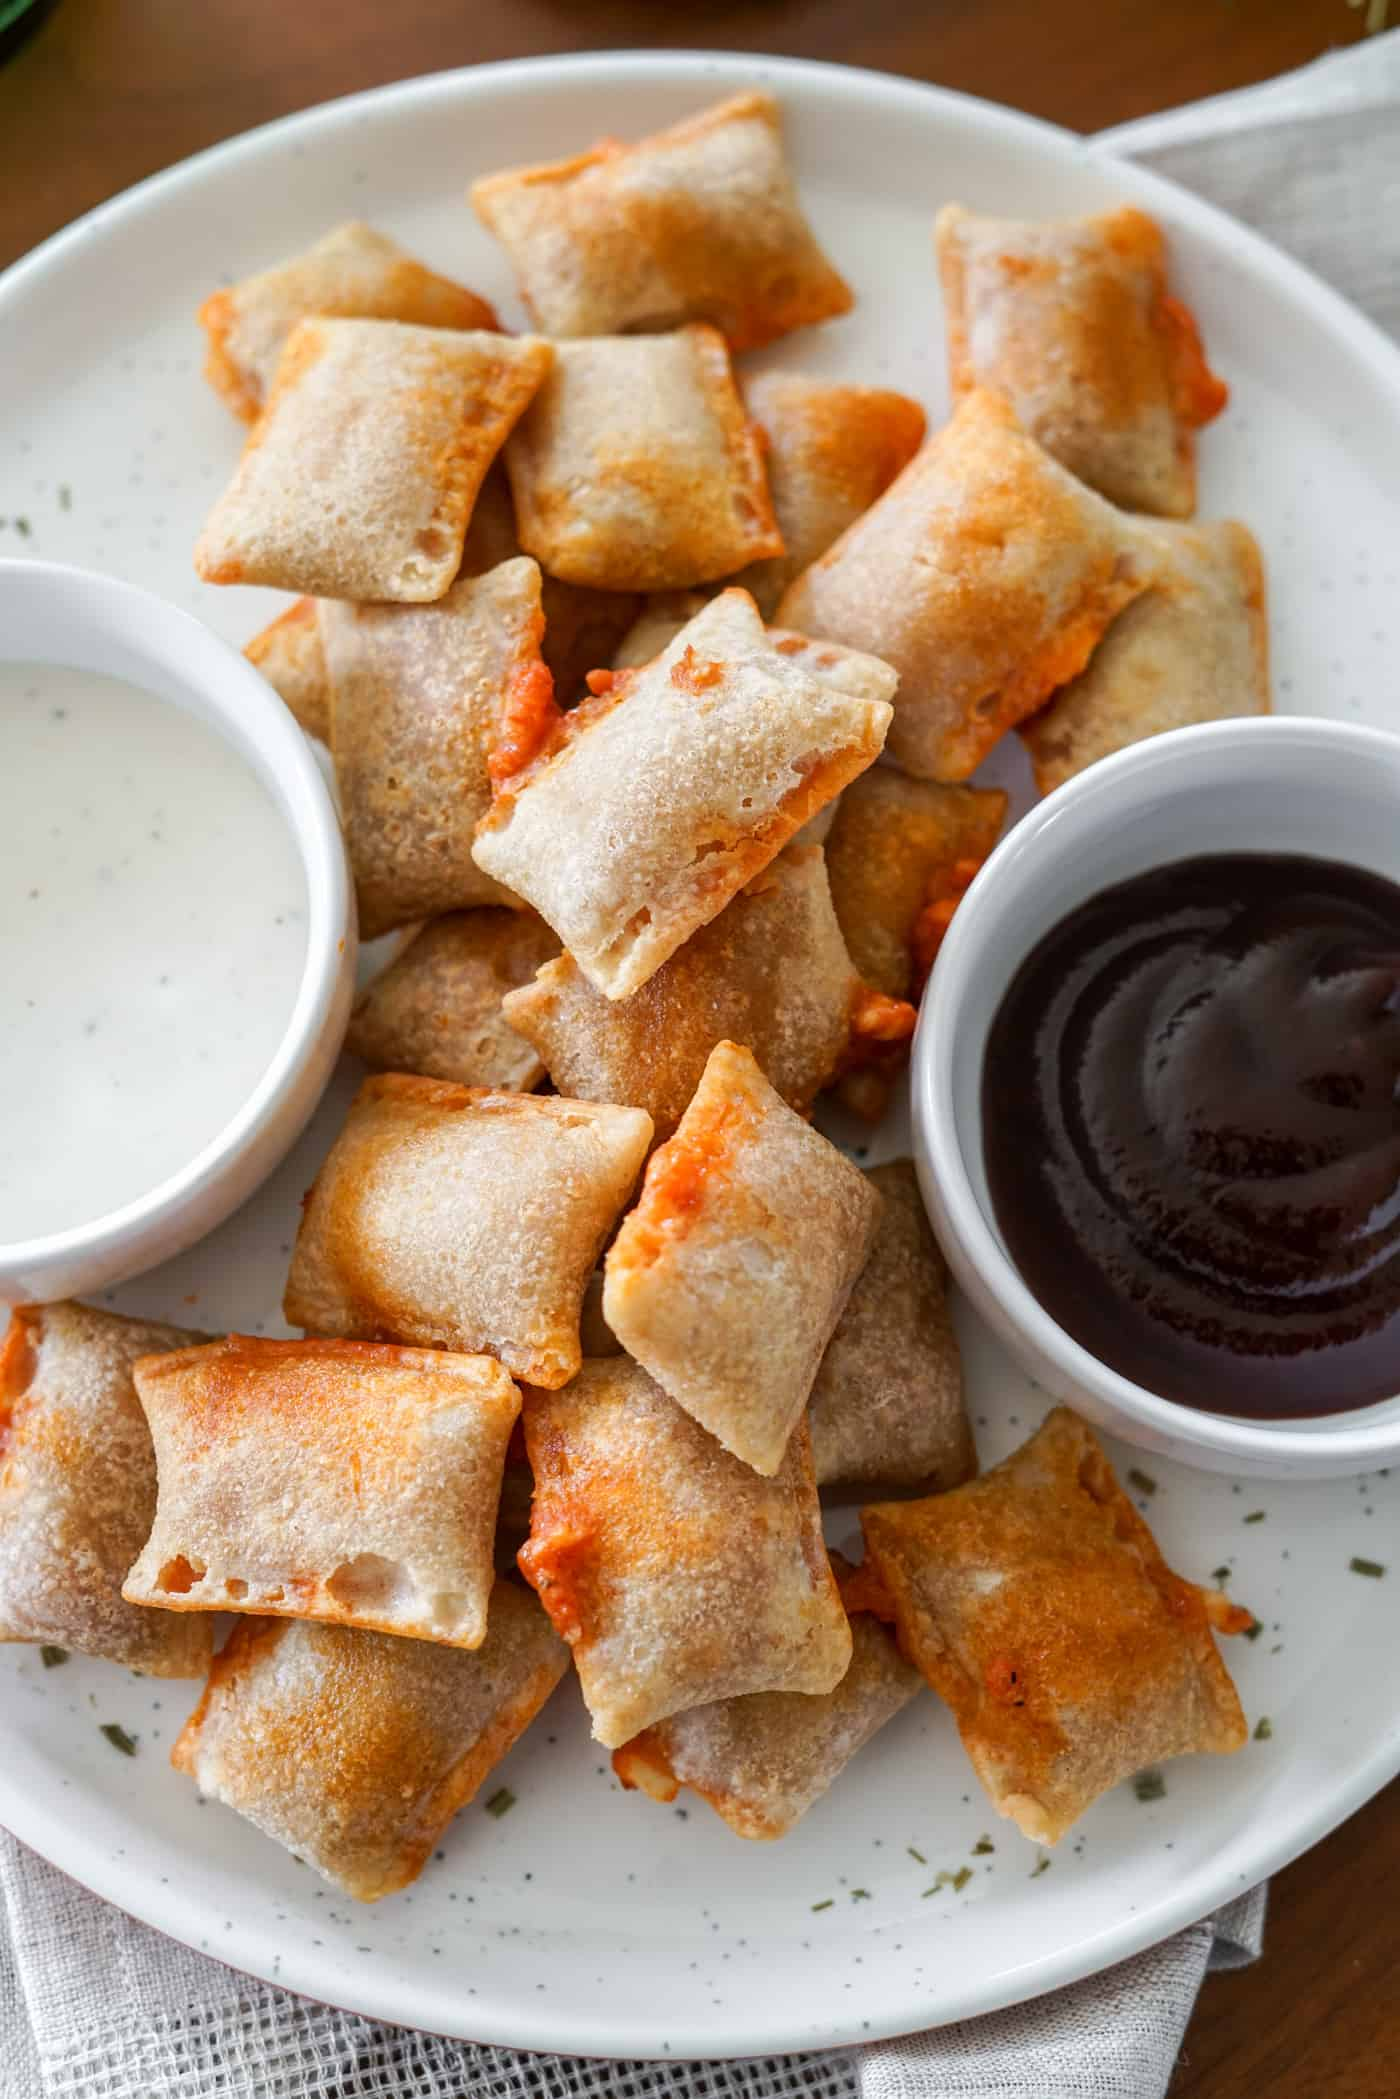 A plate of air fryer pizza rolls with ranch dipping sauce